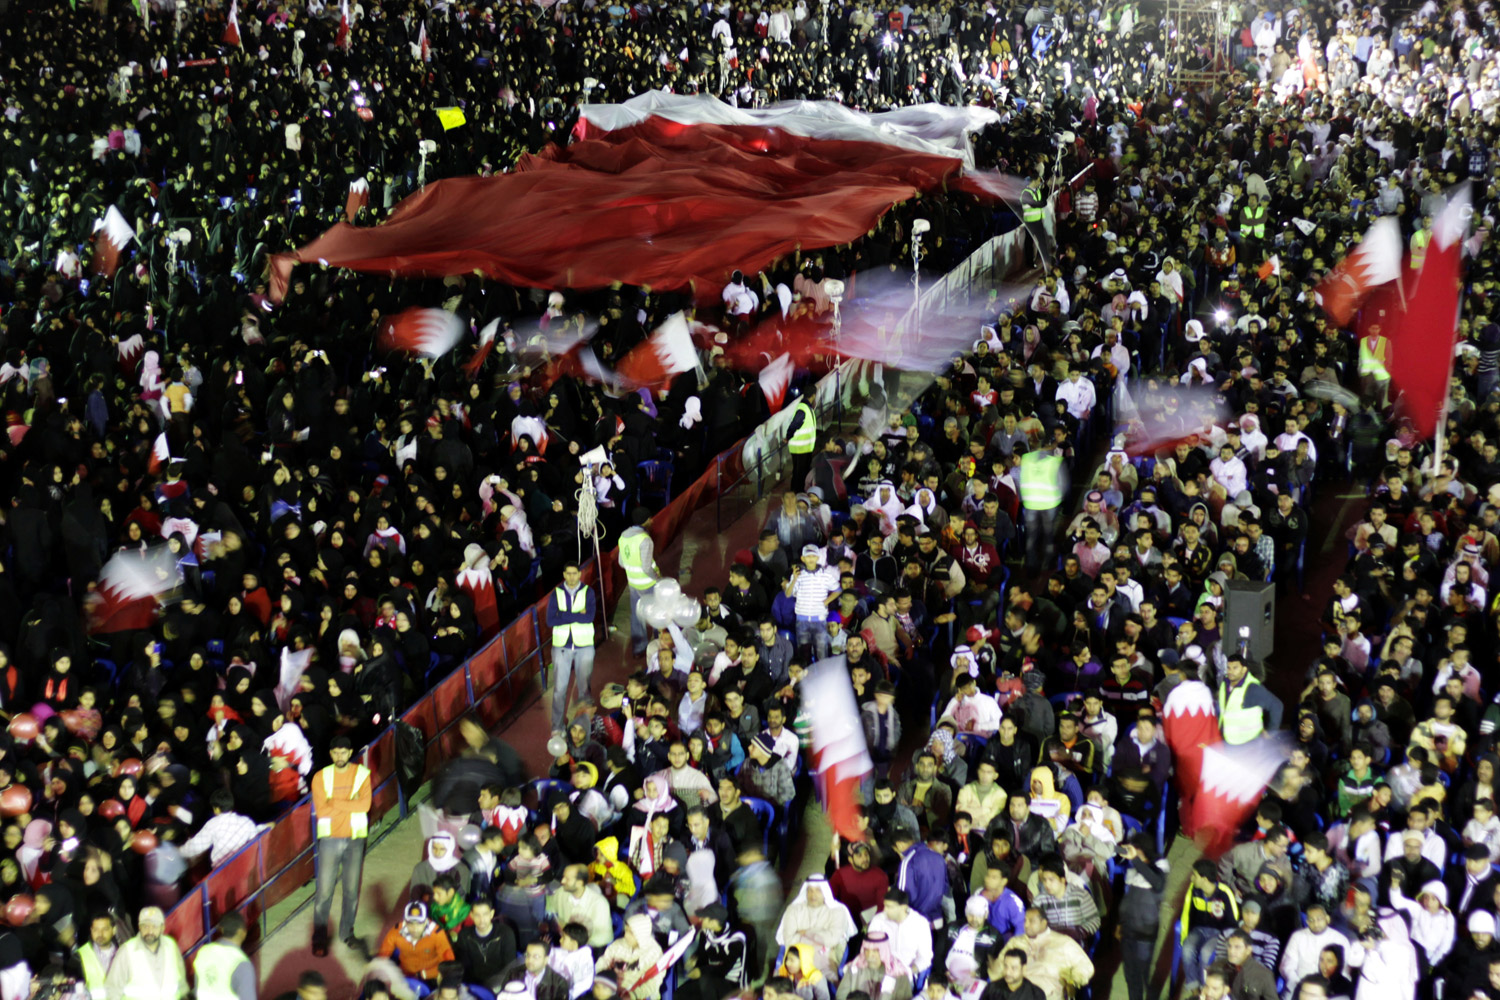 February 8, 2012. Tens of thousands of Bahrainis, many waving national flags, chant anti-government slogans during a sit-in calling for the fall of the regime and freeing of political prisoners in Muqsha, Bahrain.